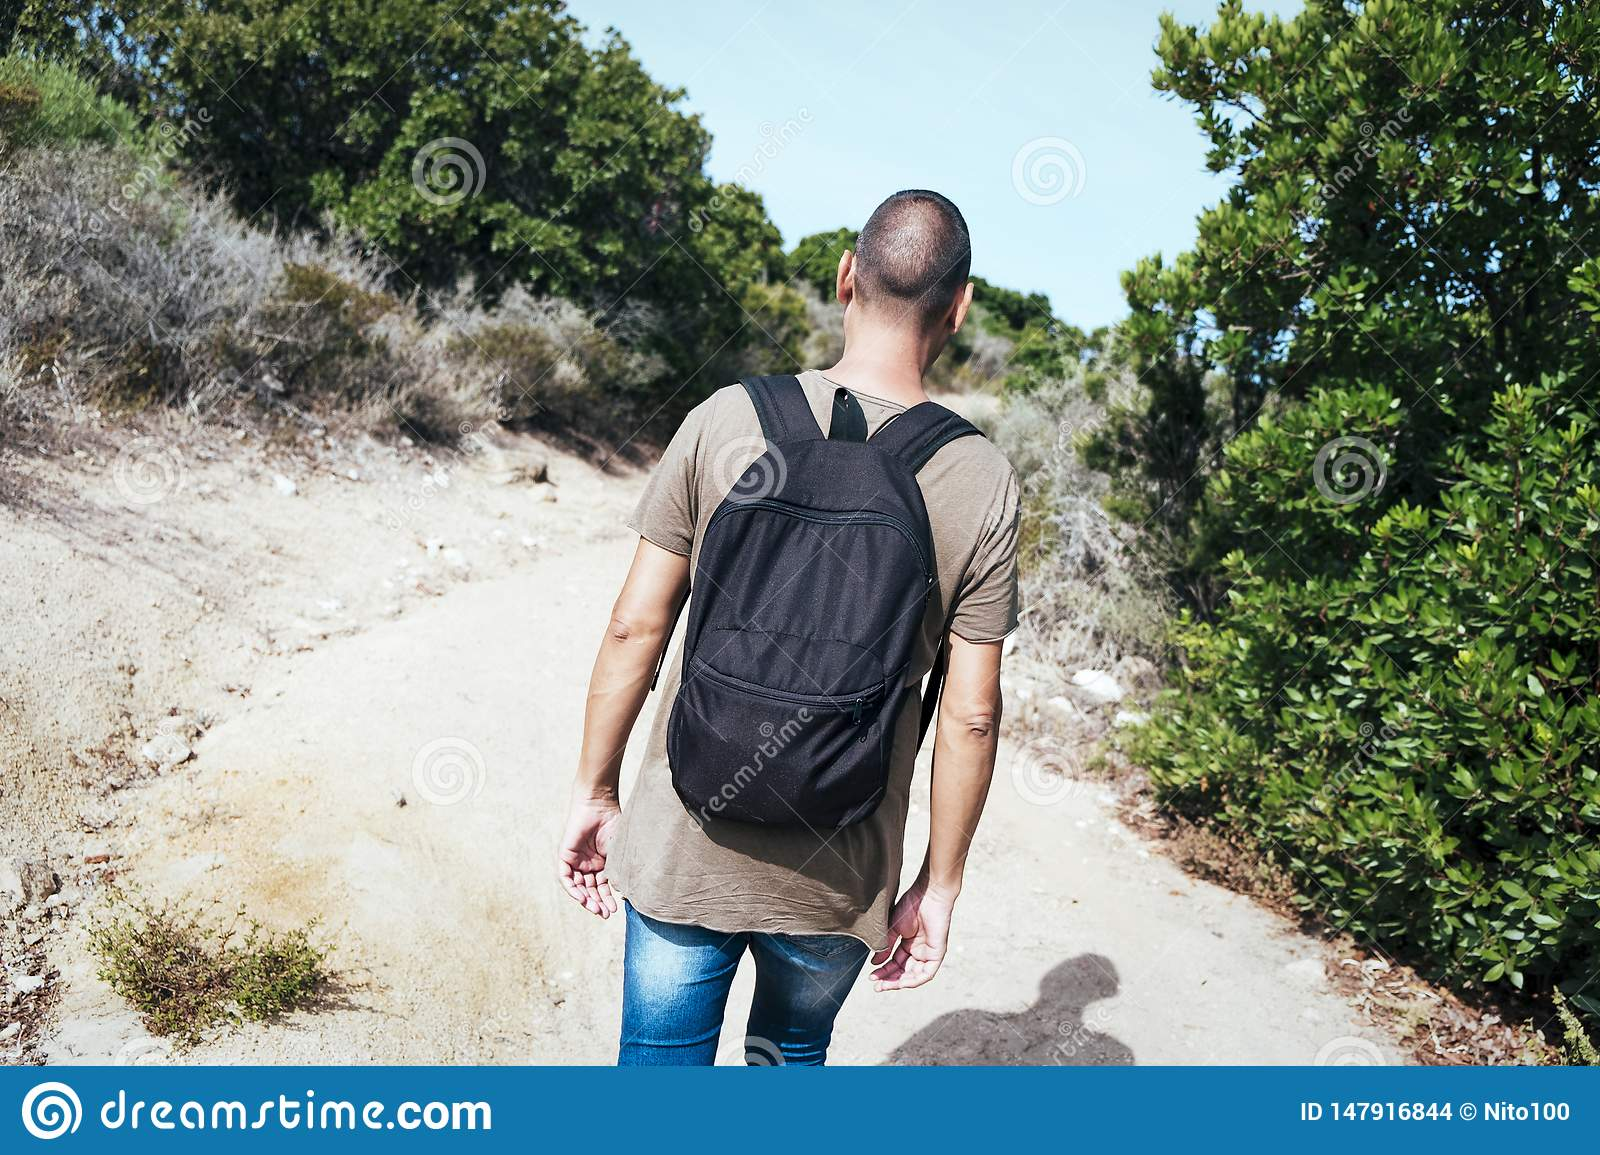 Man carrying a backpack walking by a dirt road